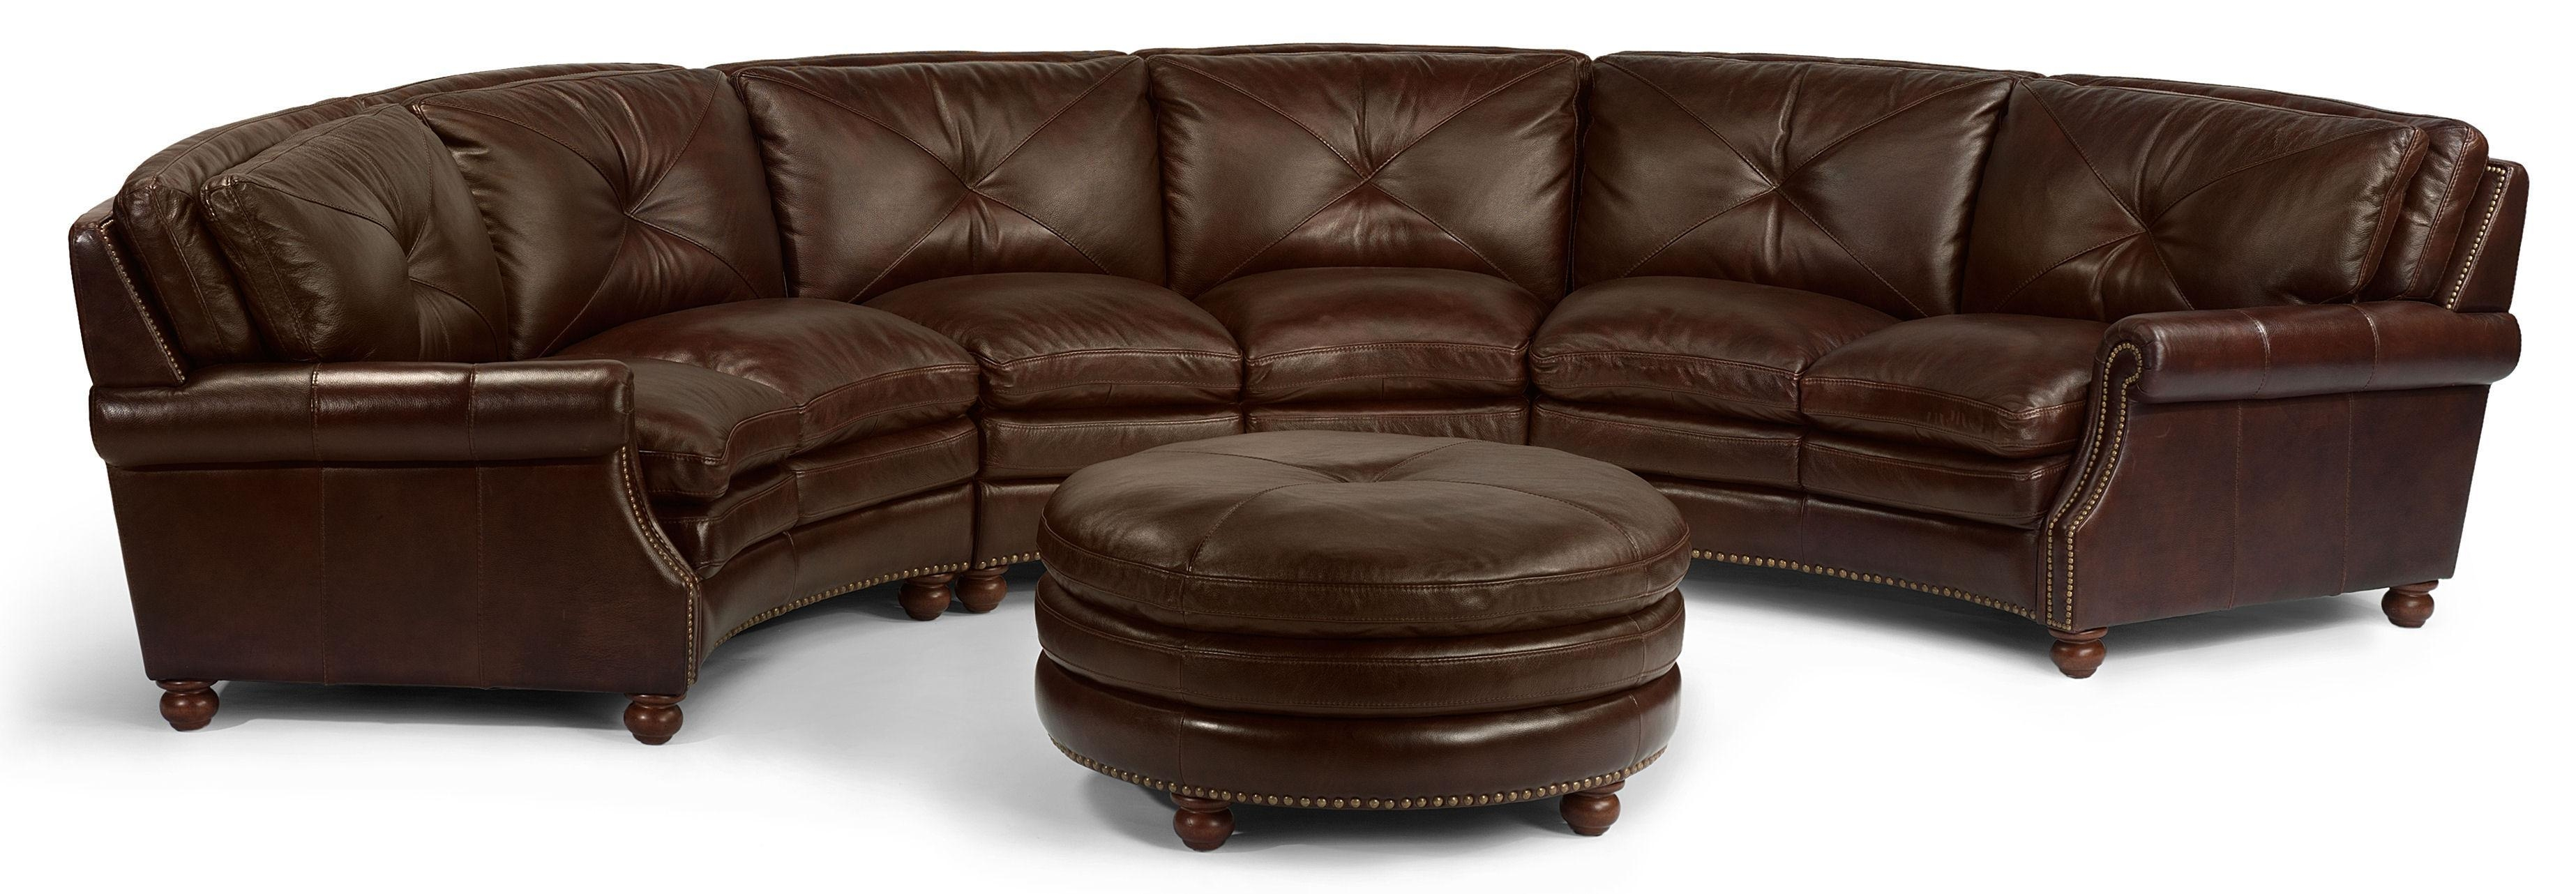 Flexsteel Latitudes Suffolk Round Sectional Sofa With Nailhead Pertaining To Circular Sectional Sofa (Image 7 of 15)